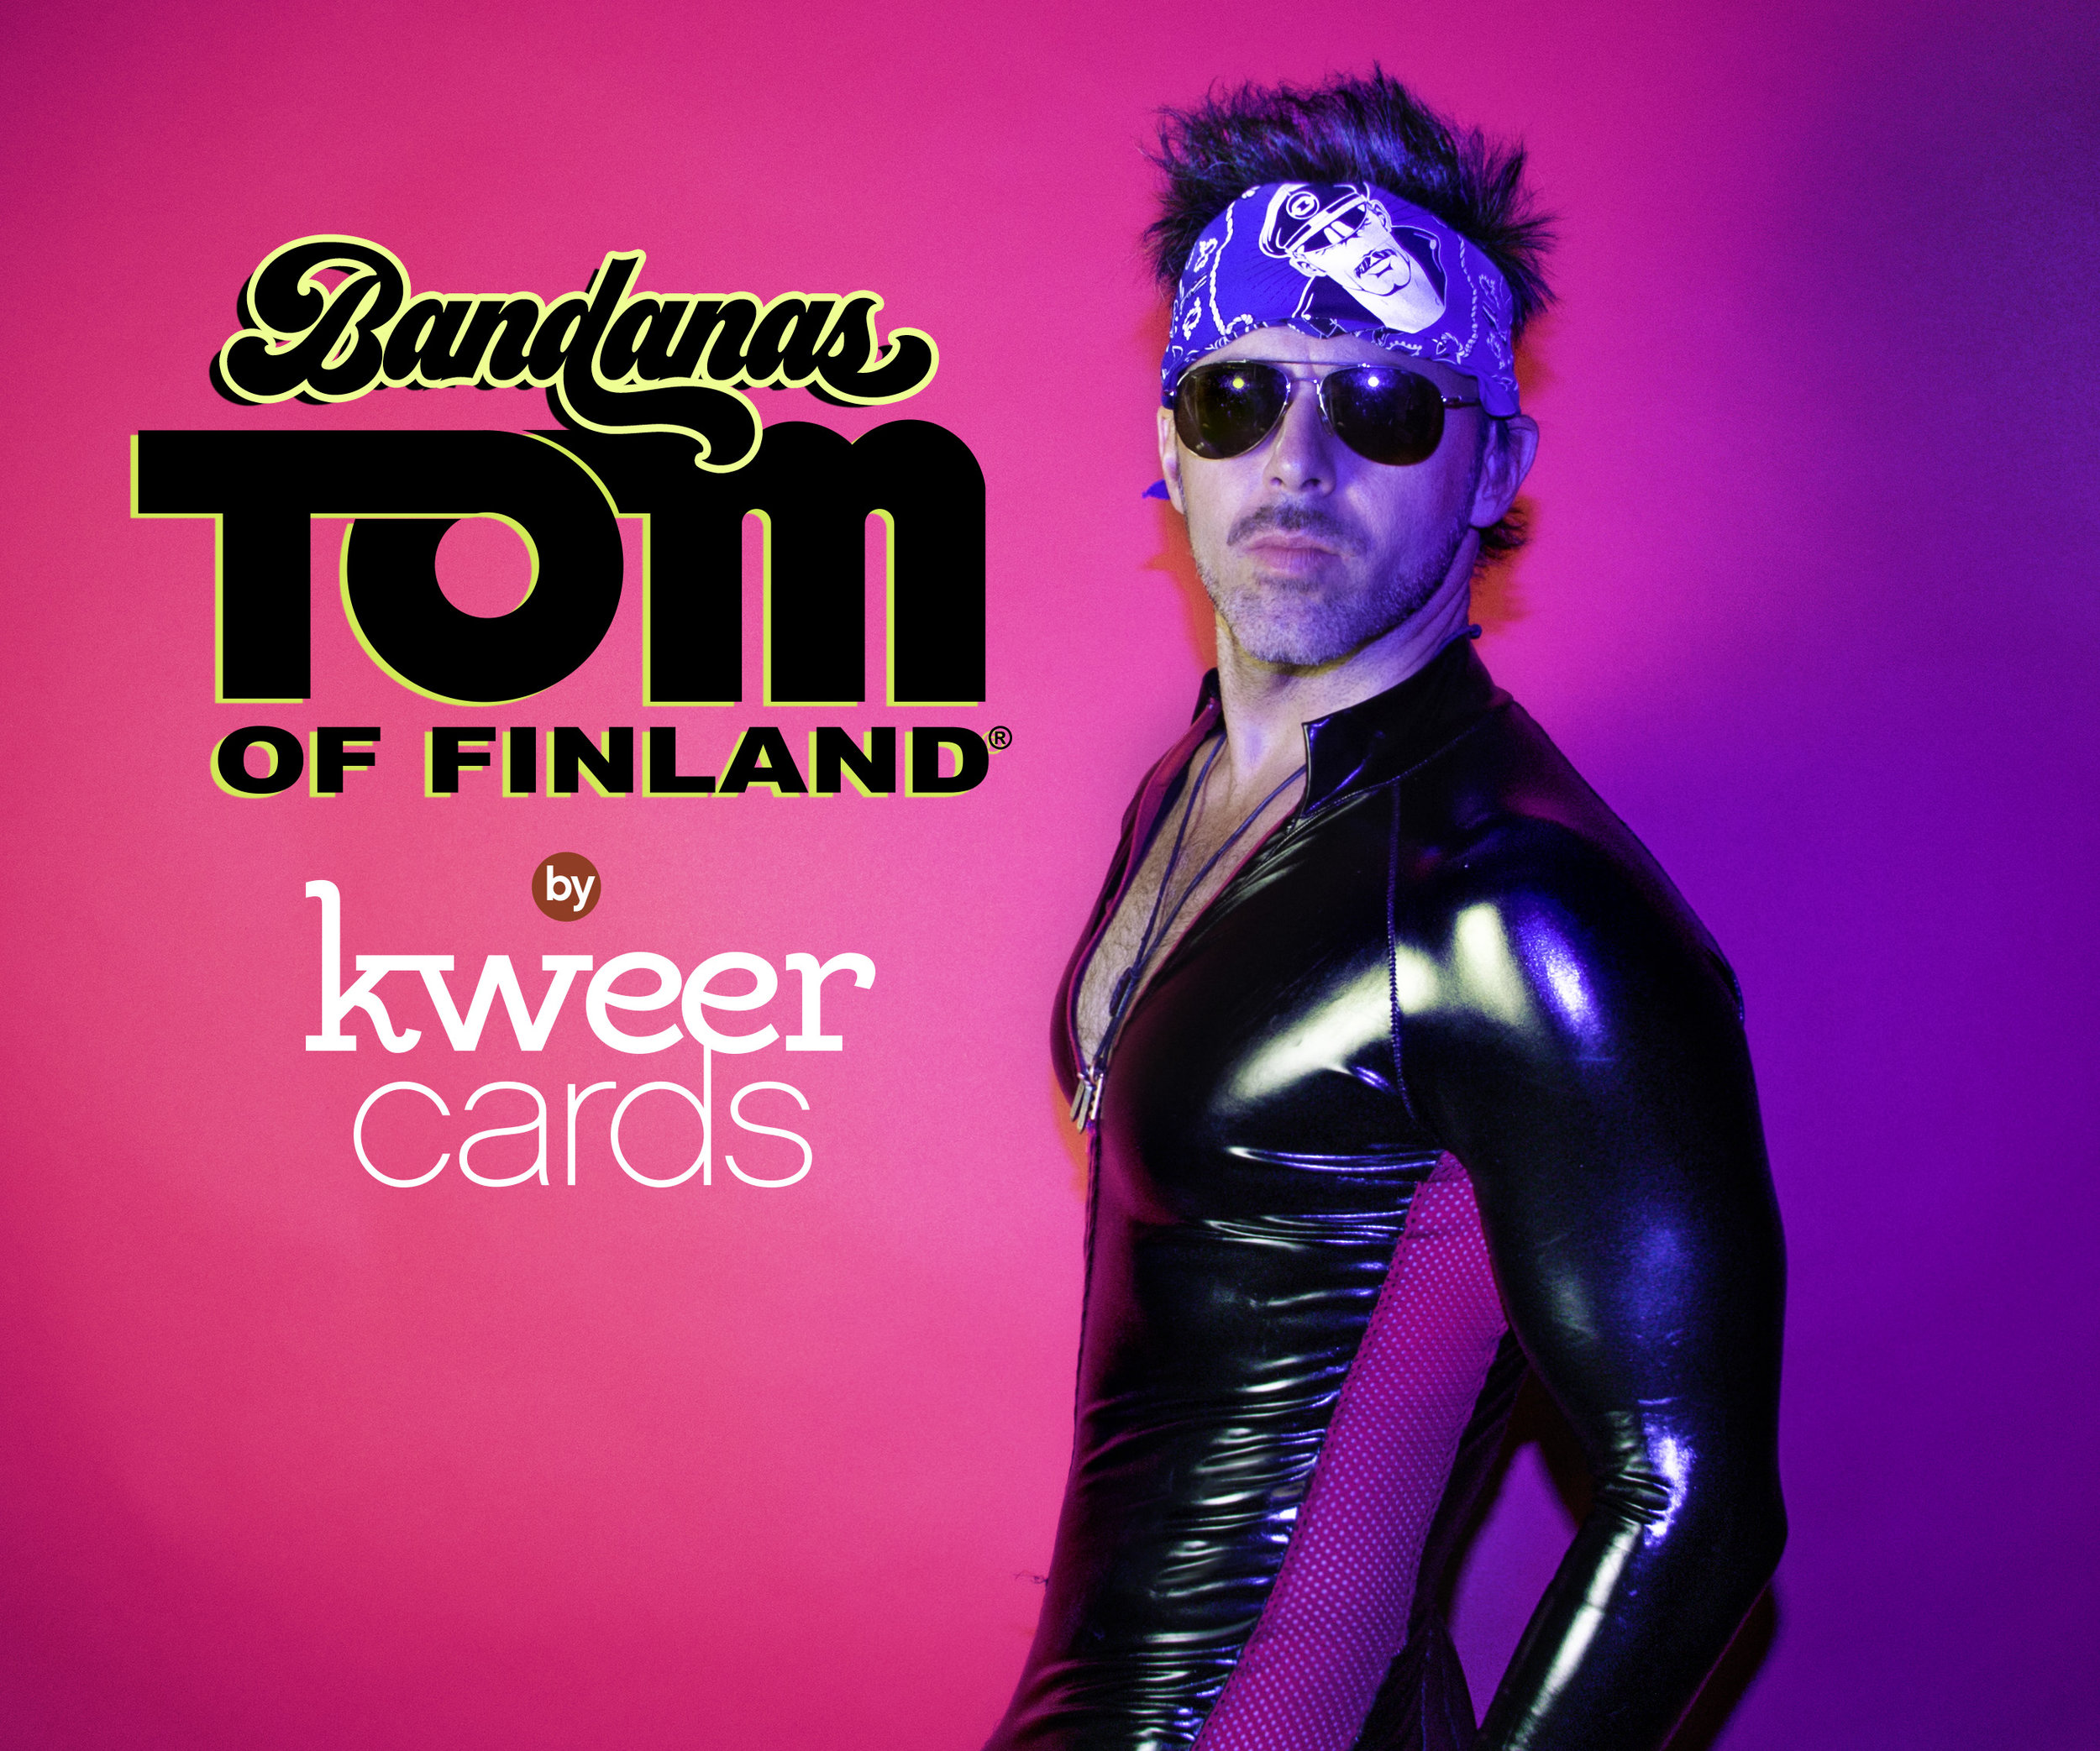 TOM OF FINLAND BANDANA GAY.jpg